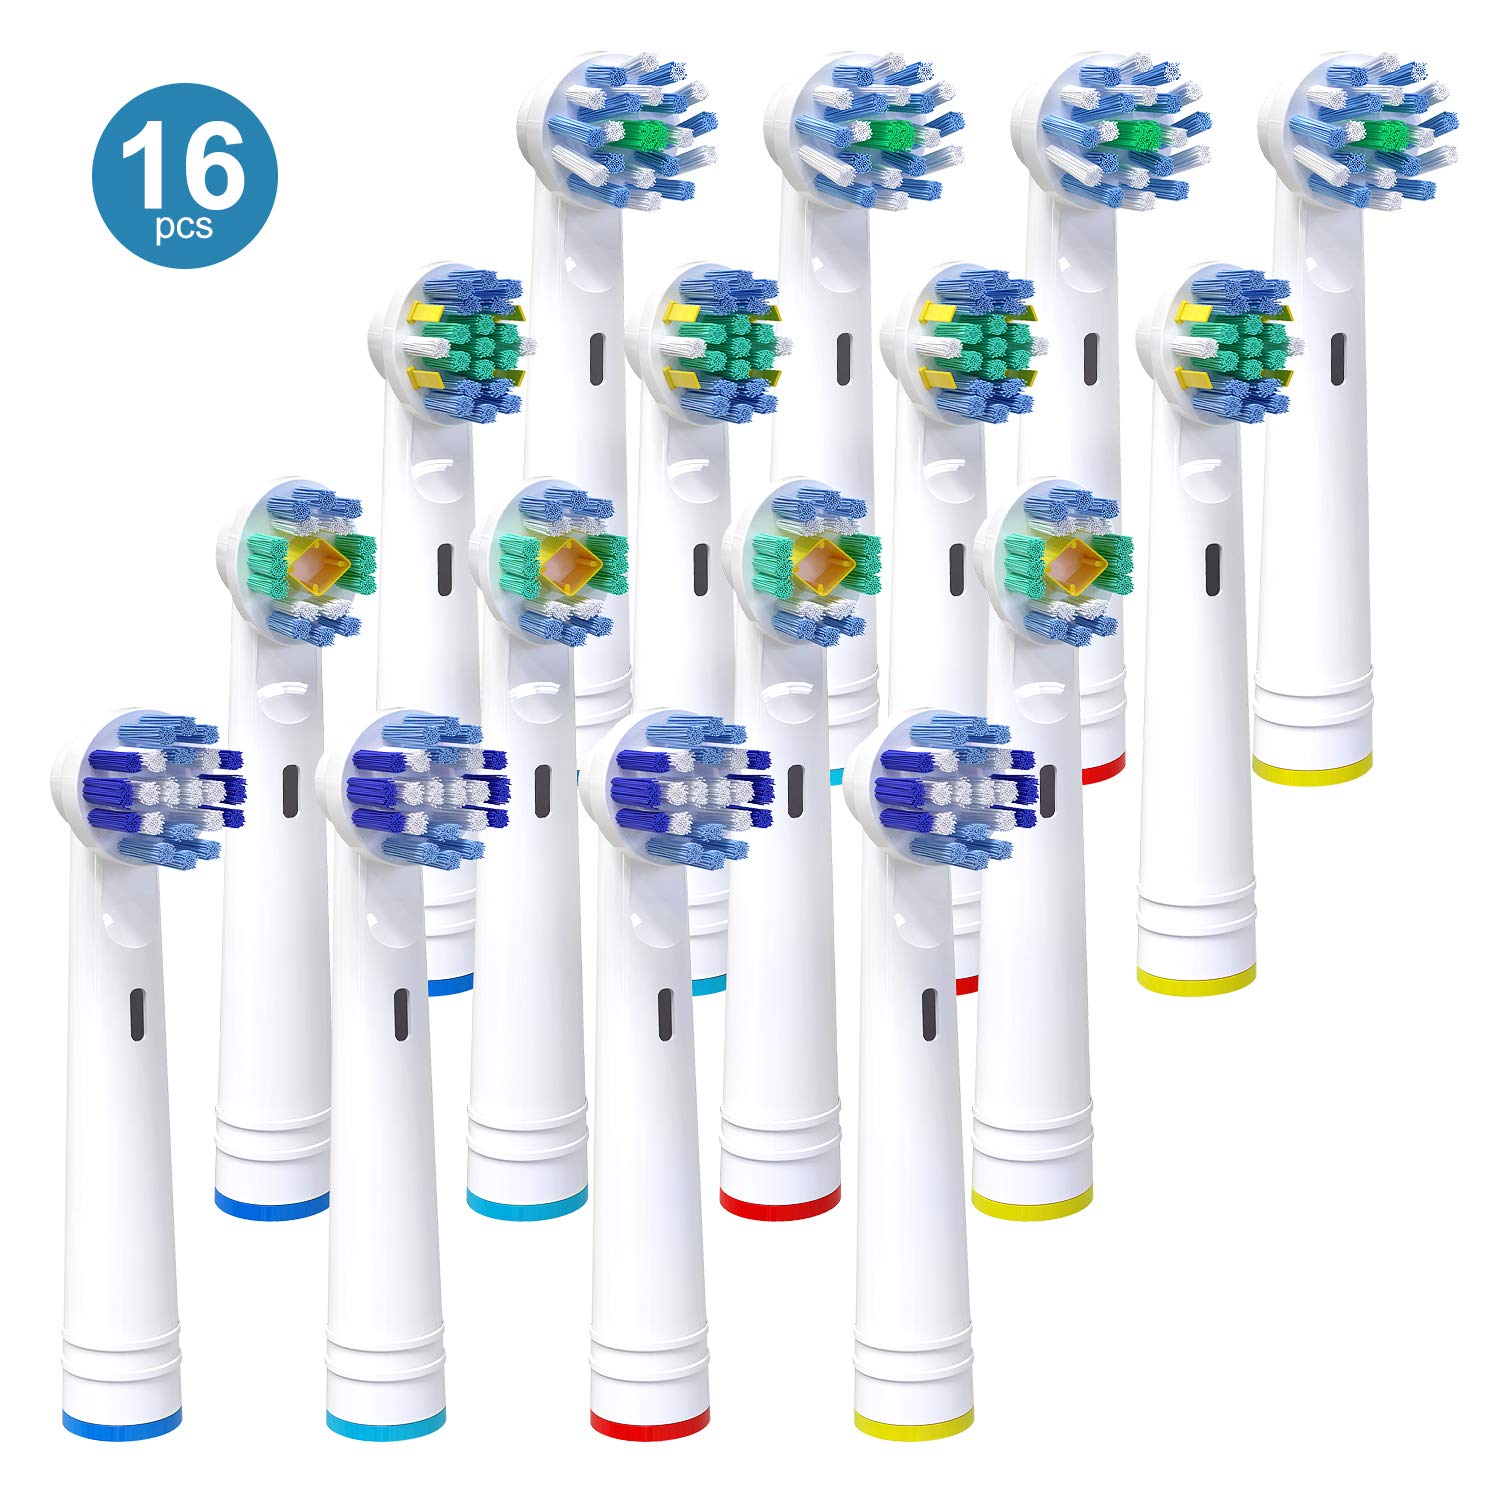 Replacement Toothbrush Heads for Oral B, iTrunk 16 Pack Electric Toothbrush Heads Compatible